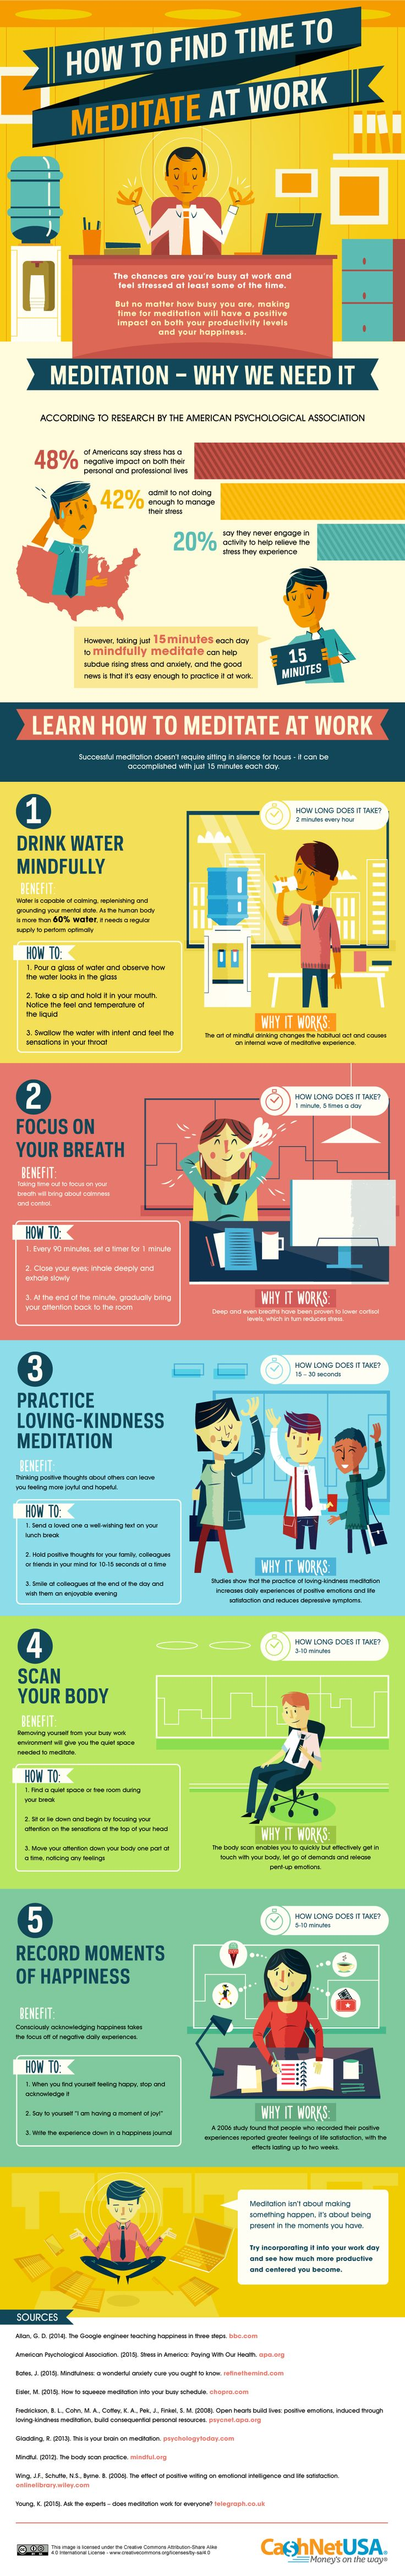 How to Find Time to Meditate at Work